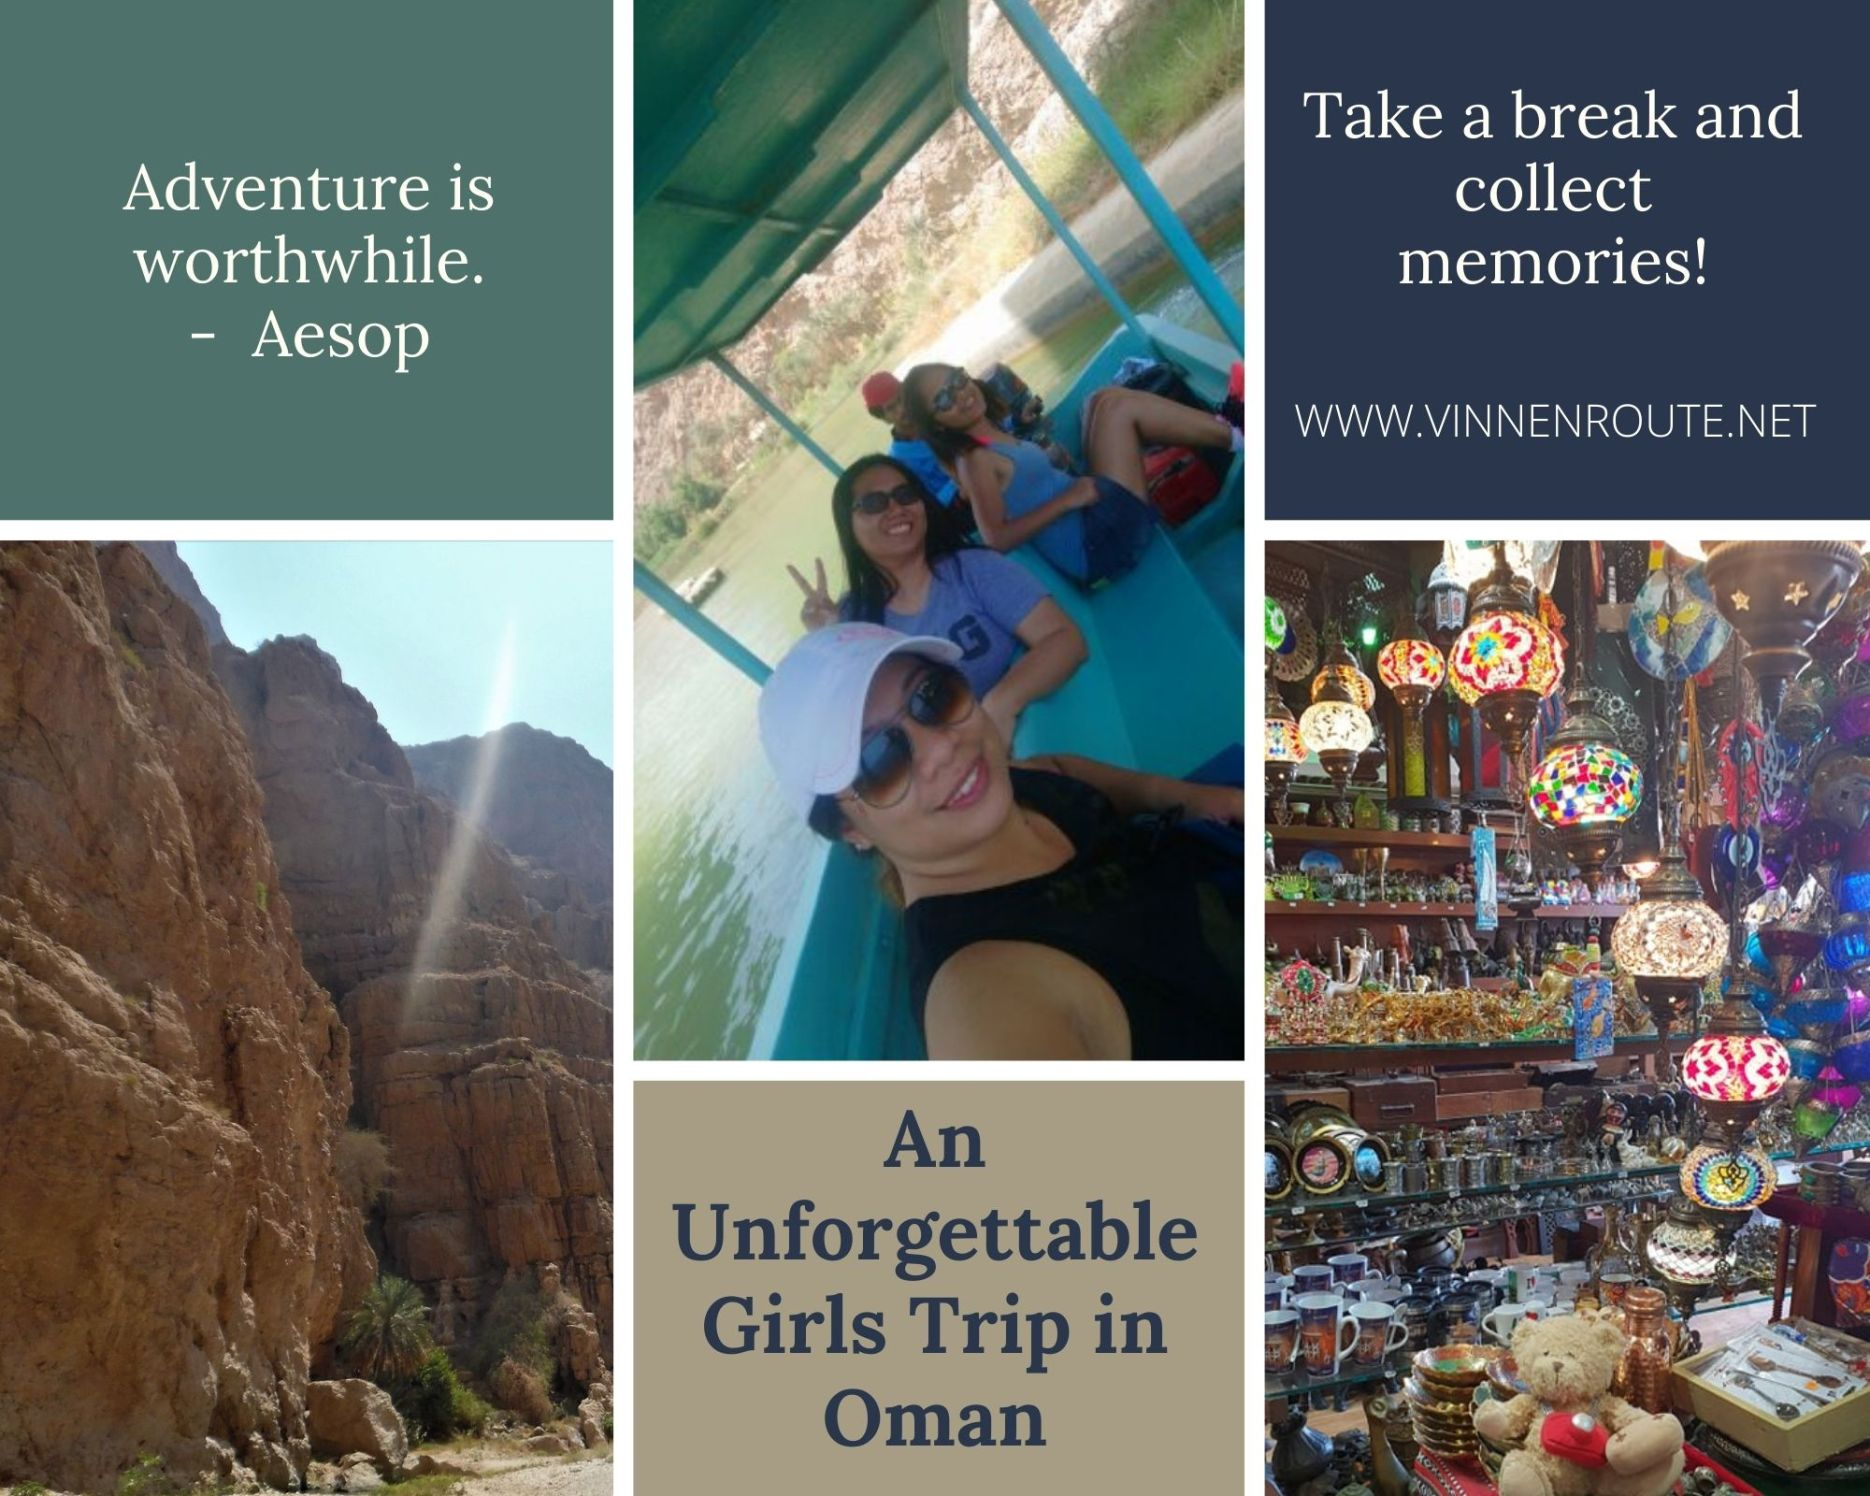 An Unforgettable Girls Trip in Oman Cover